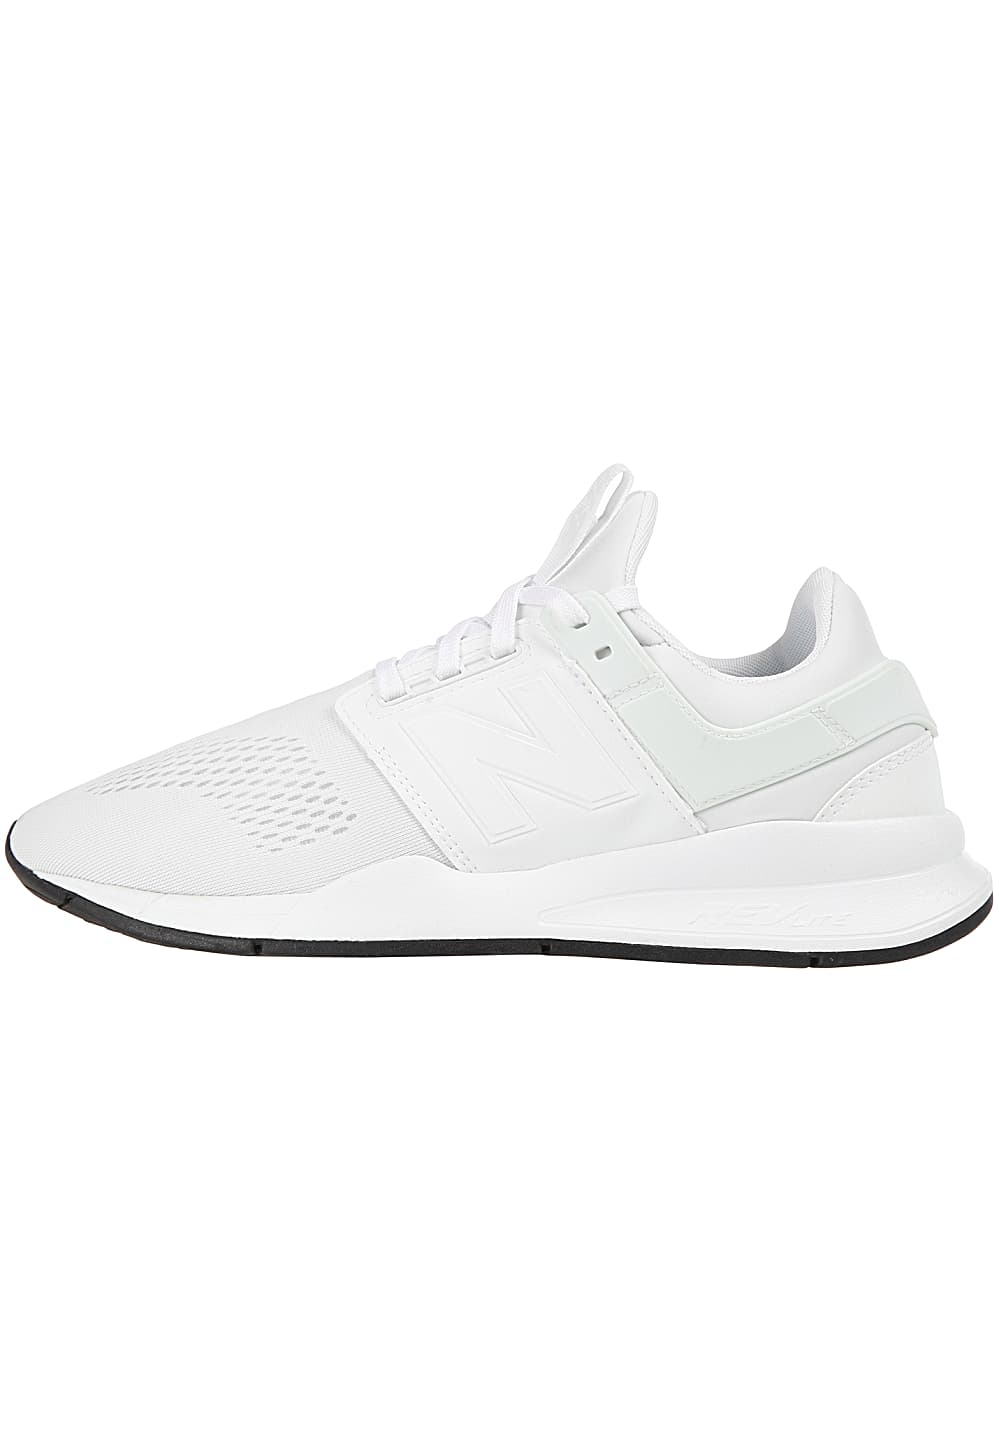 best service 28fc1 dd410 NEW BALANCE MS247 D - Sneakers for Men - White - Planet Sports